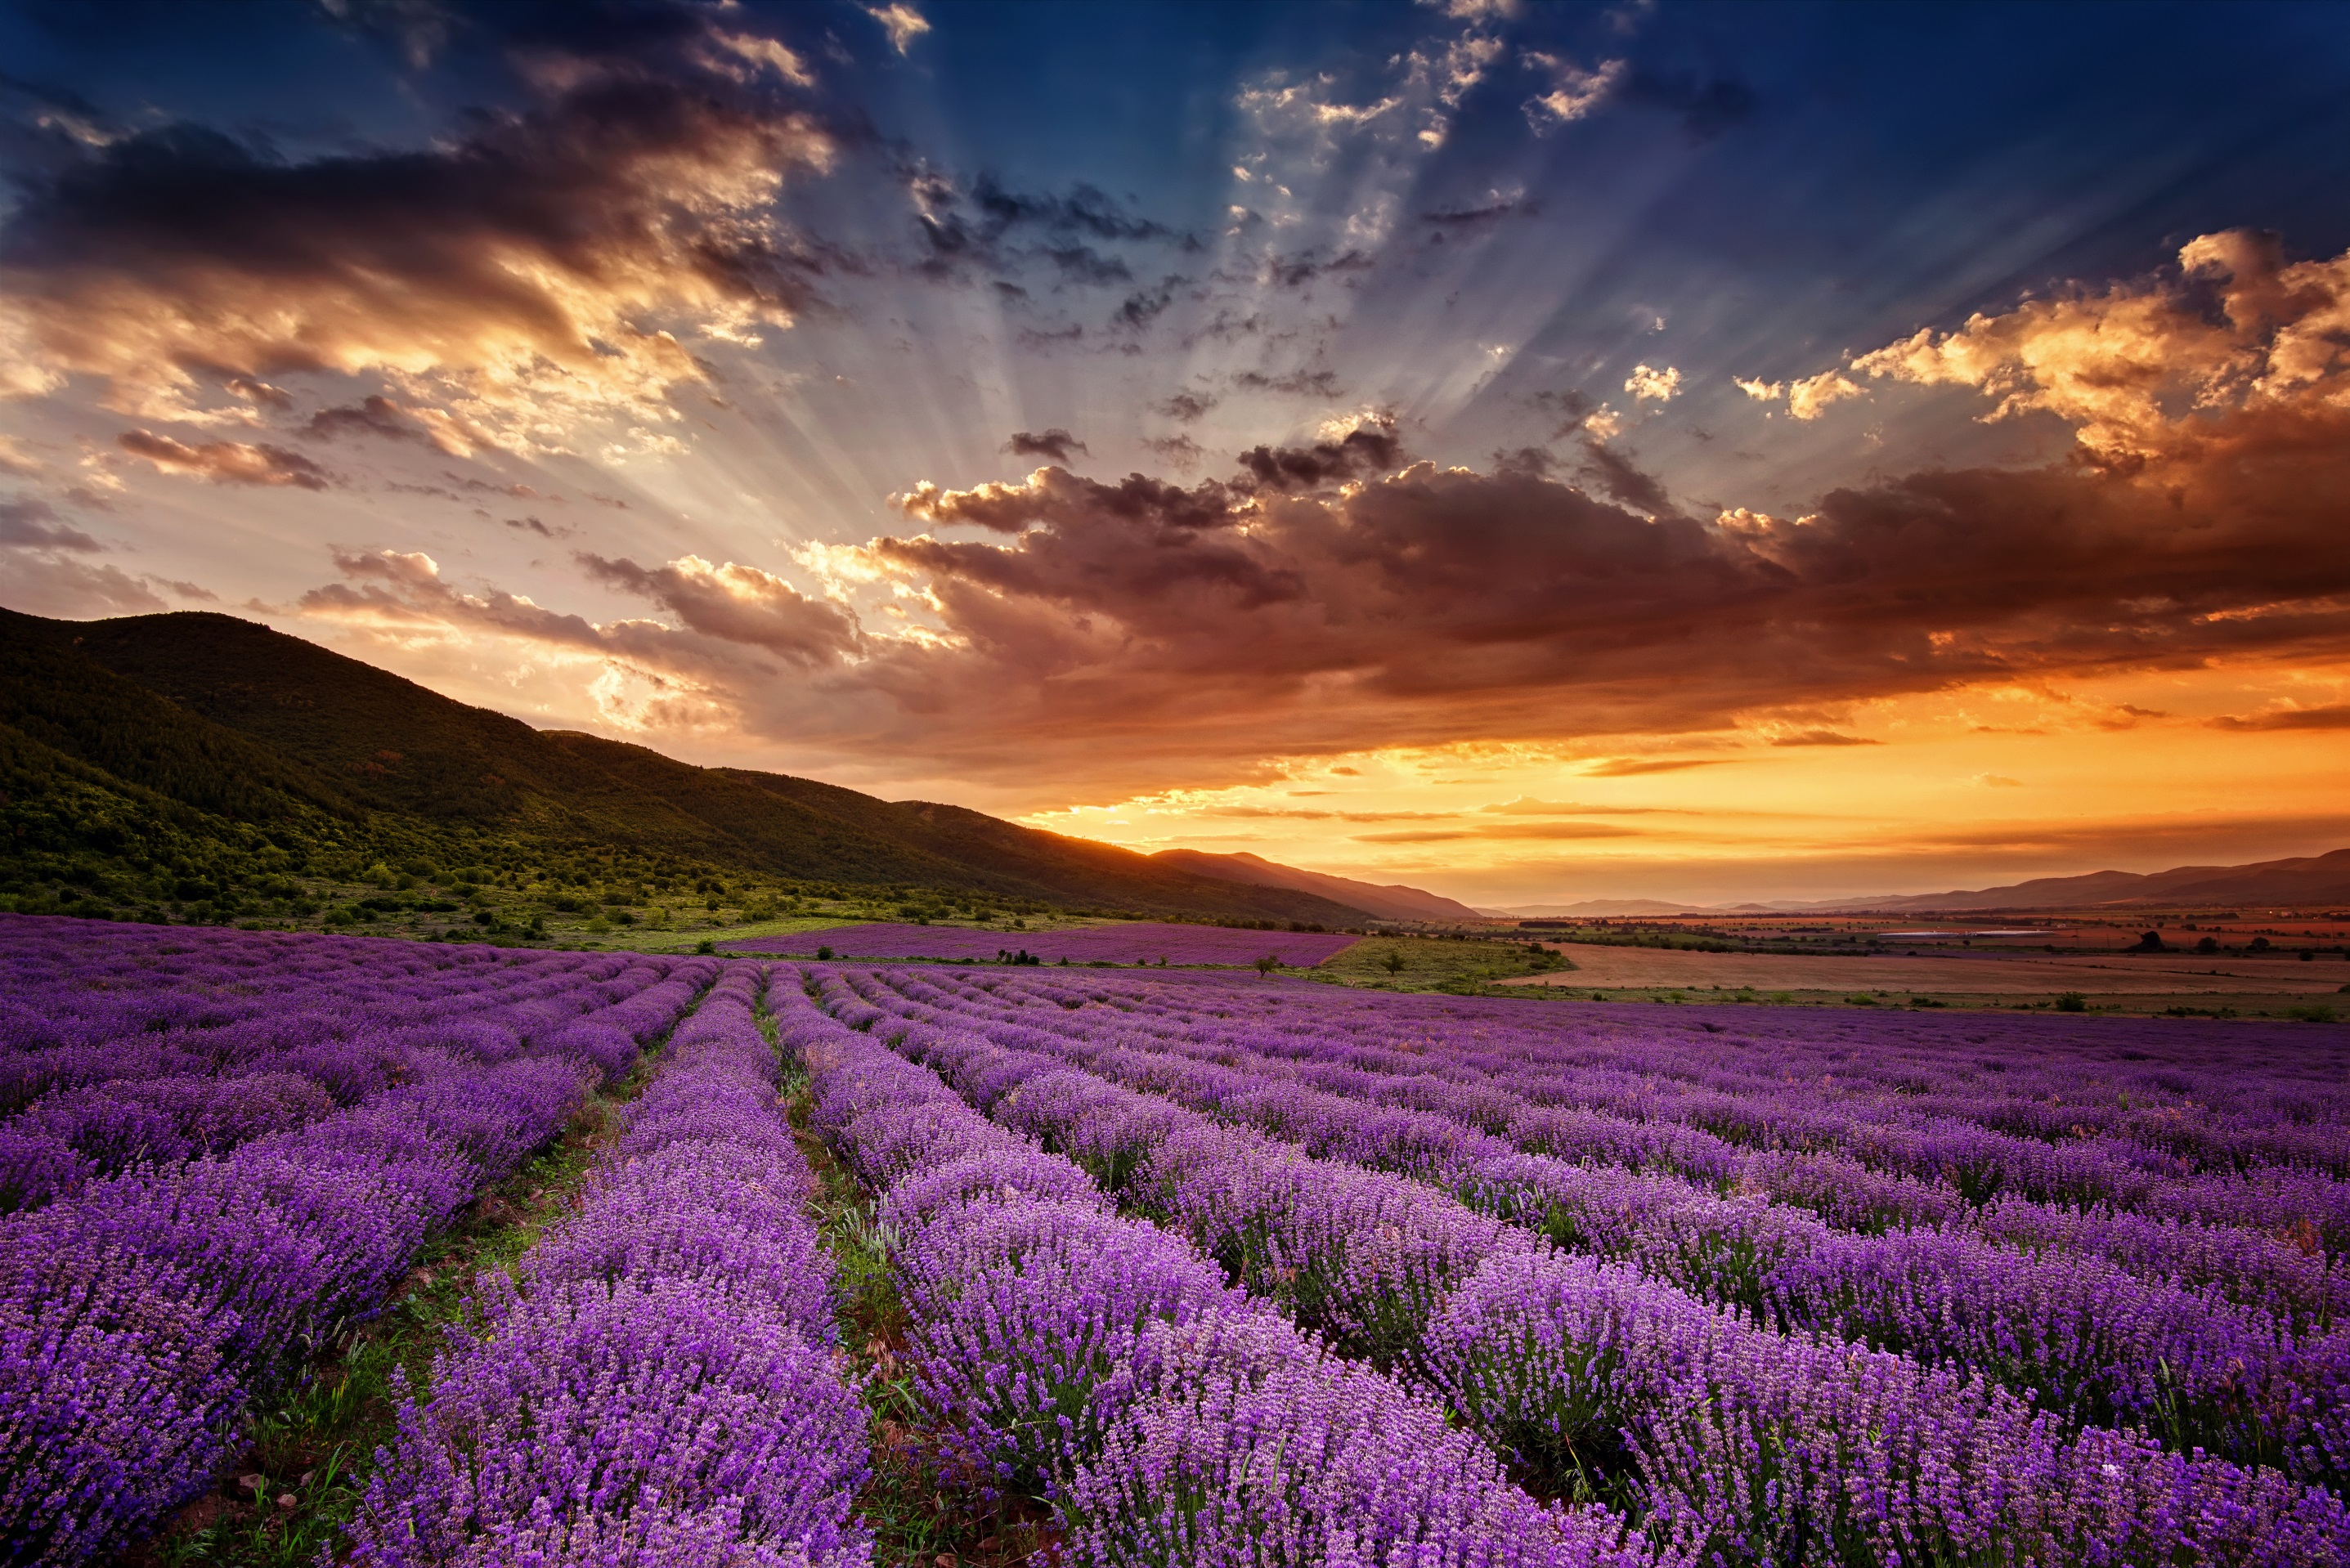 Falling Down Flowers Wallpaper The Many Ways To Use Lavender Zen Box Essential Oils